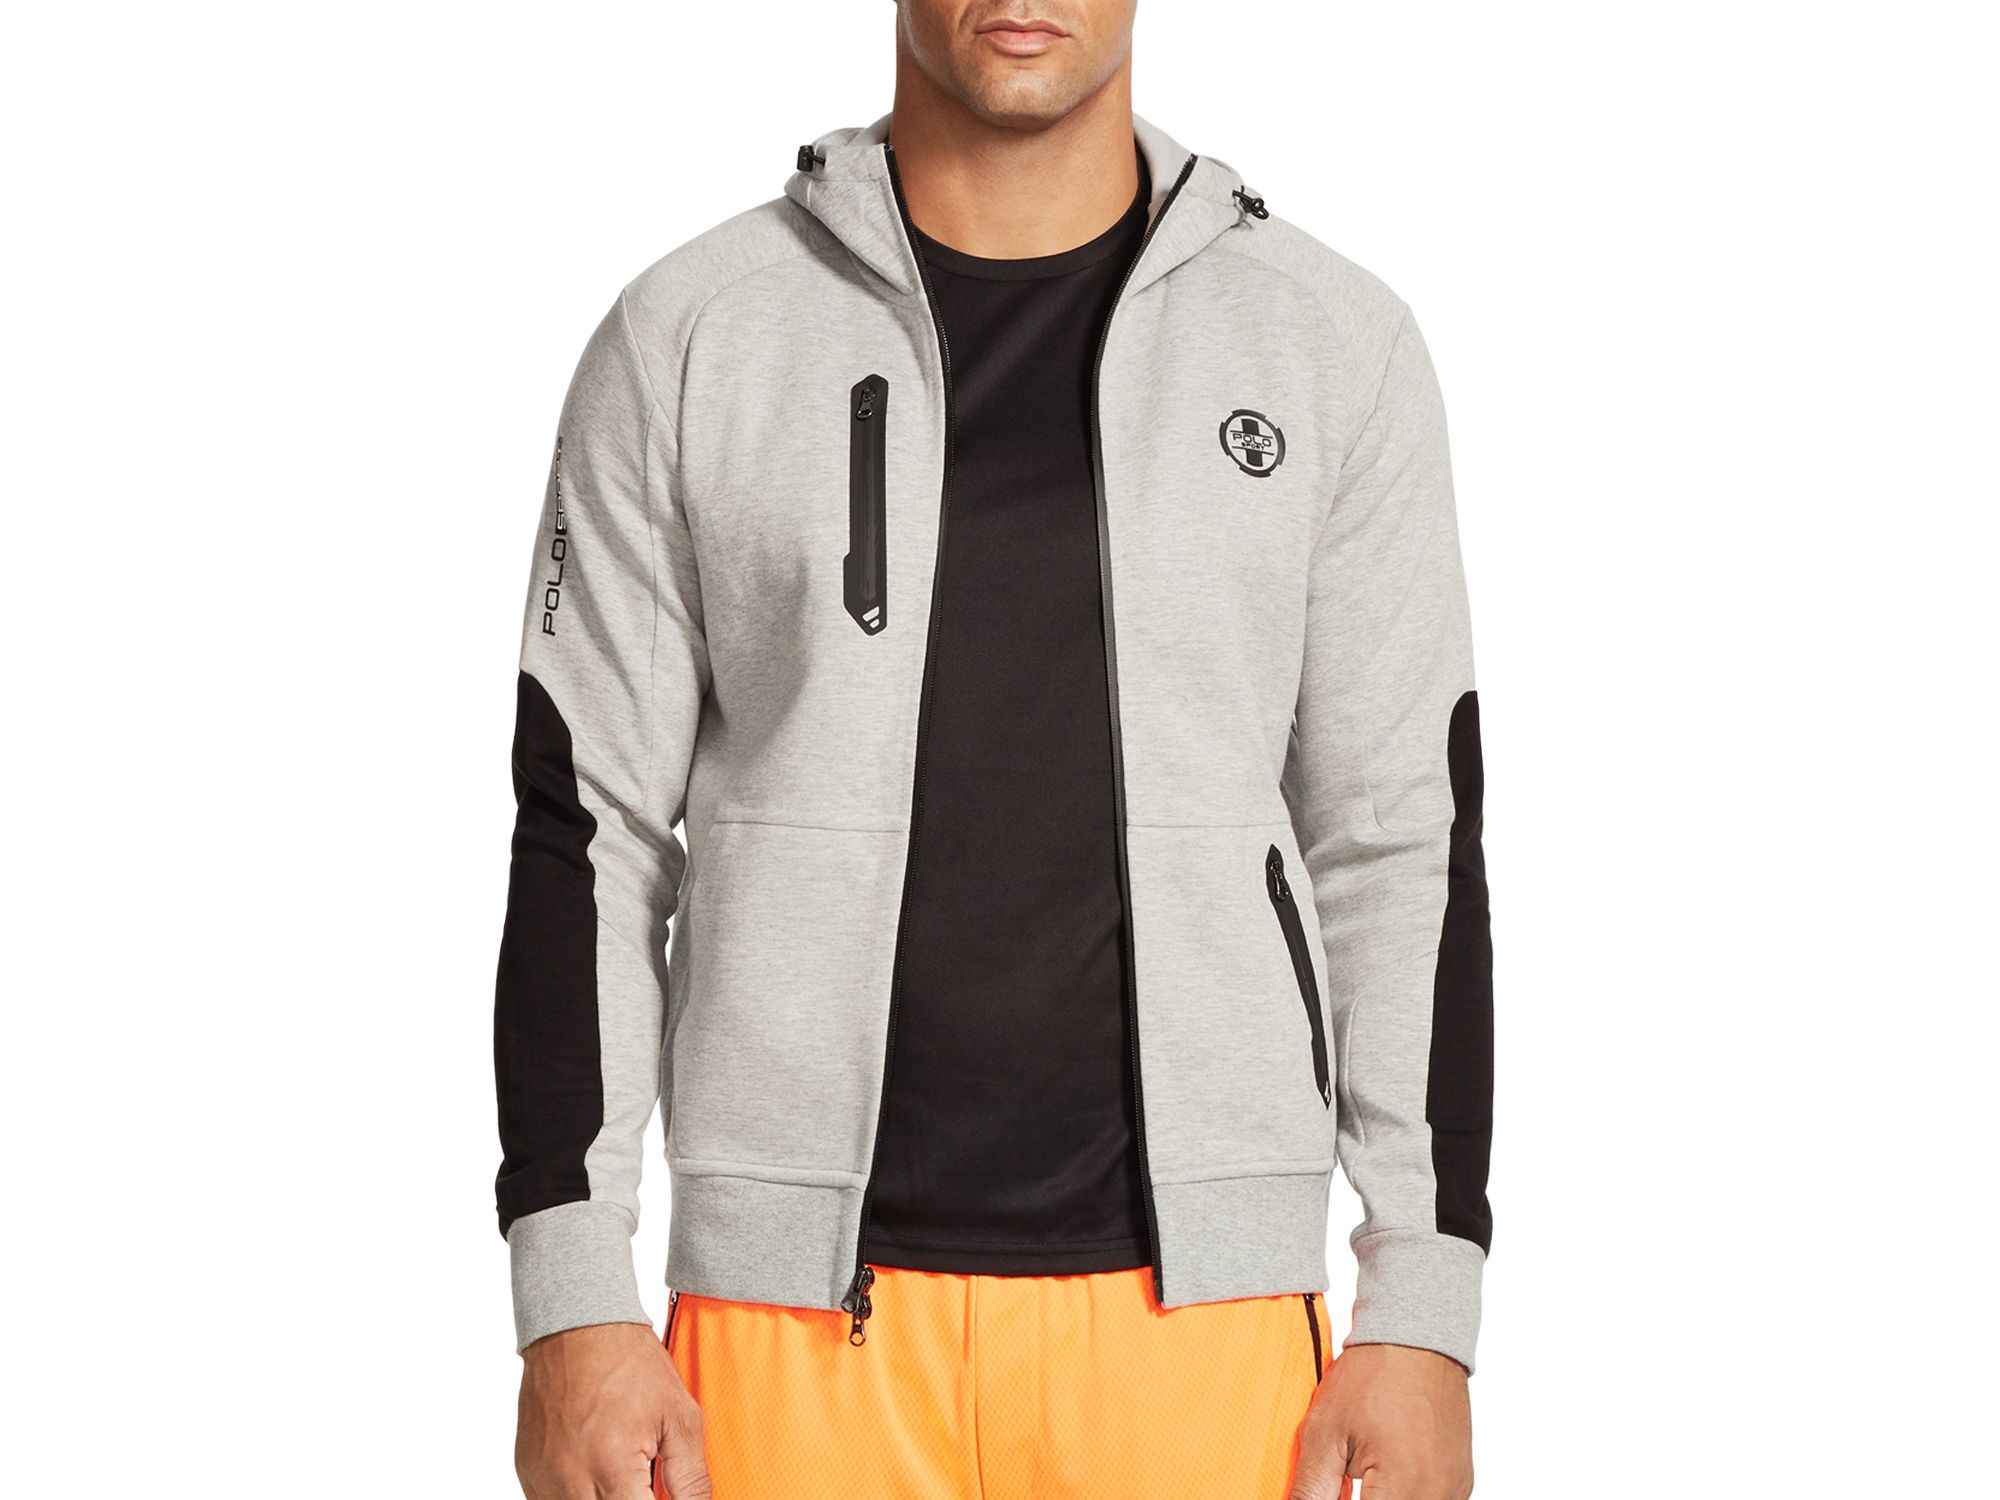 e9a698f0fa2b Lyst - Polo Ralph Lauren Double-knit Full-zip Hoodie in Gray for Men